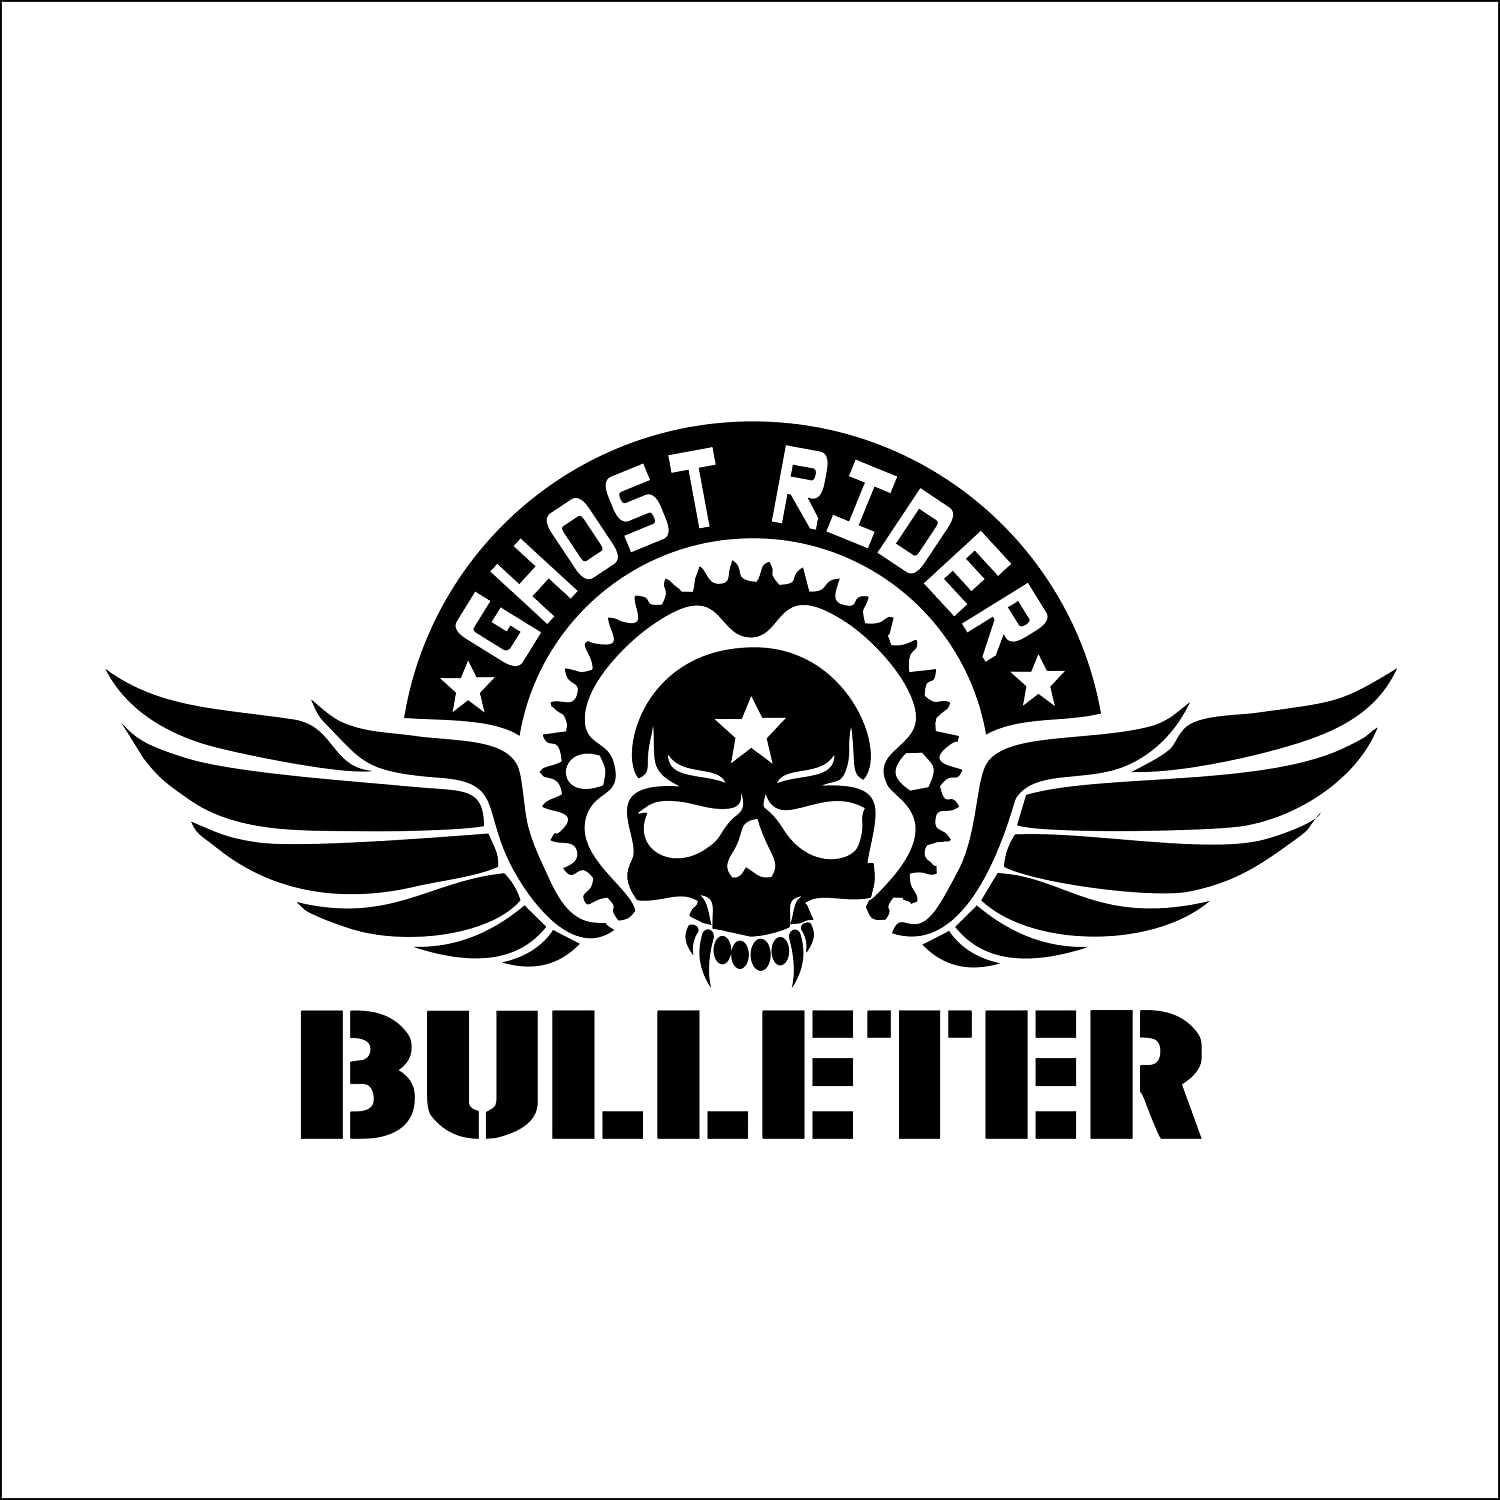 Stickerbuy ghost rider bulleter reflective customised royal enfield sticker decal sticker amazon in car motorbike